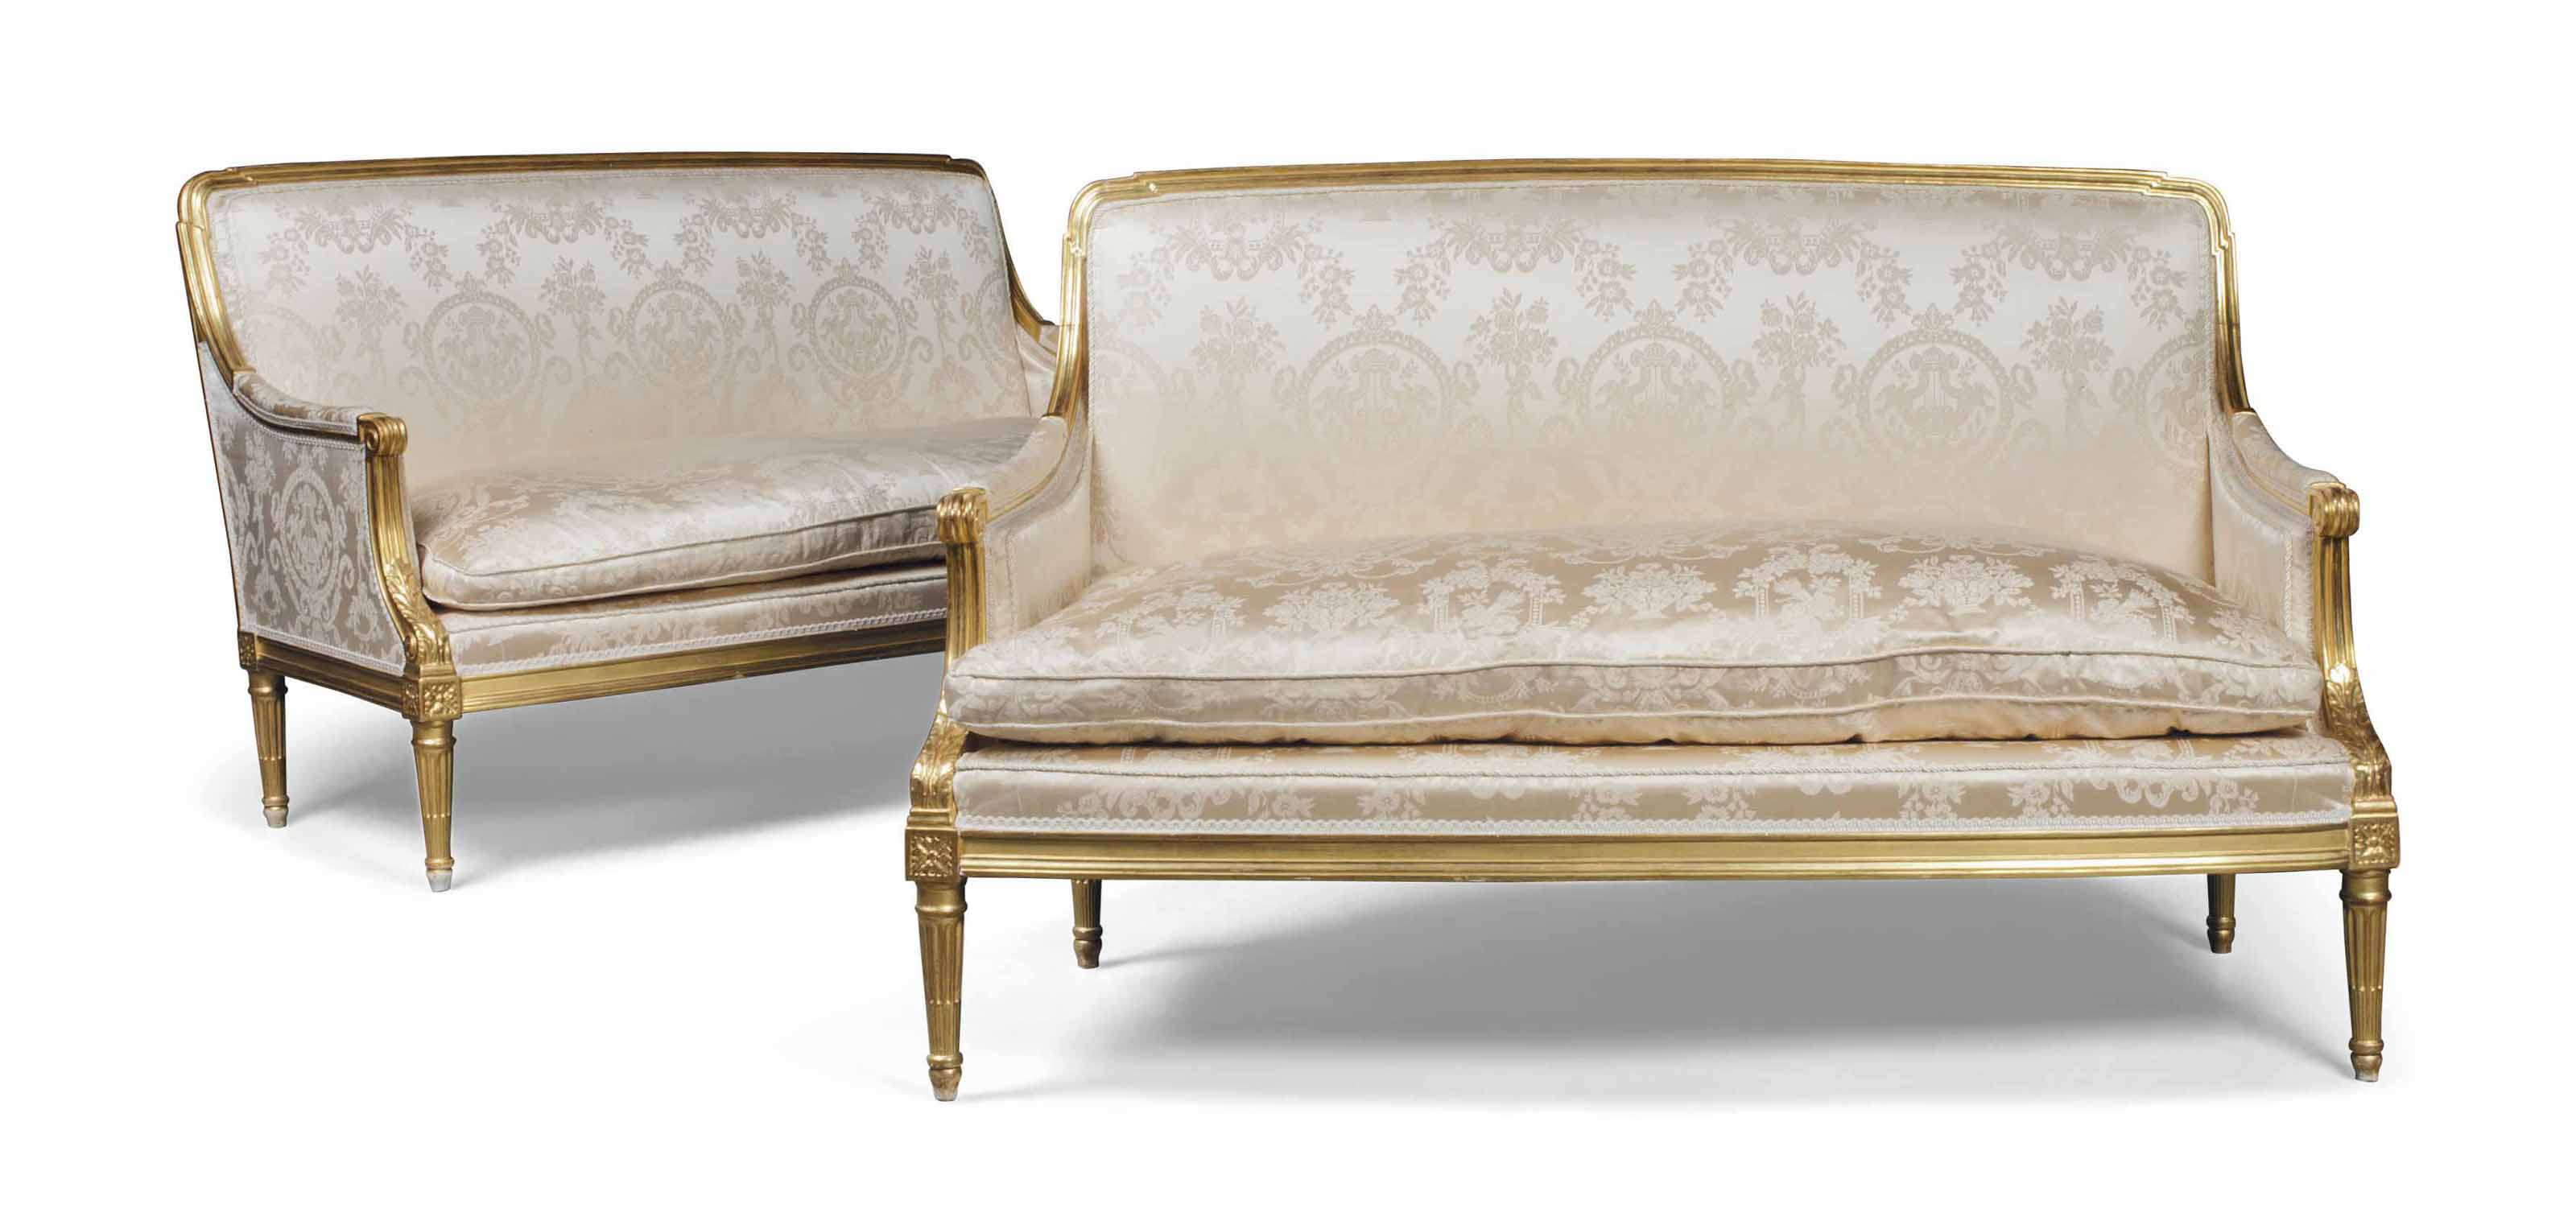 A PAIR OF FRENCH GILTWOOD SOFA